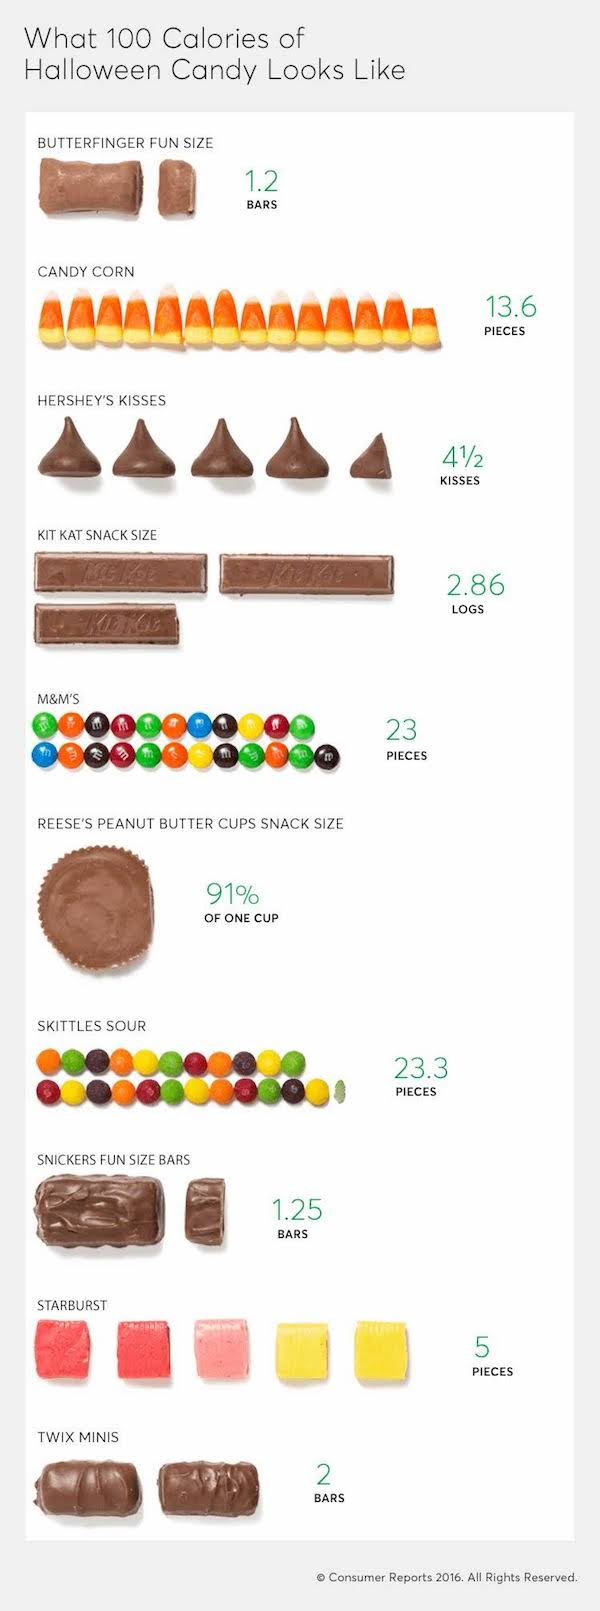 Halloween Candy Eating Tips